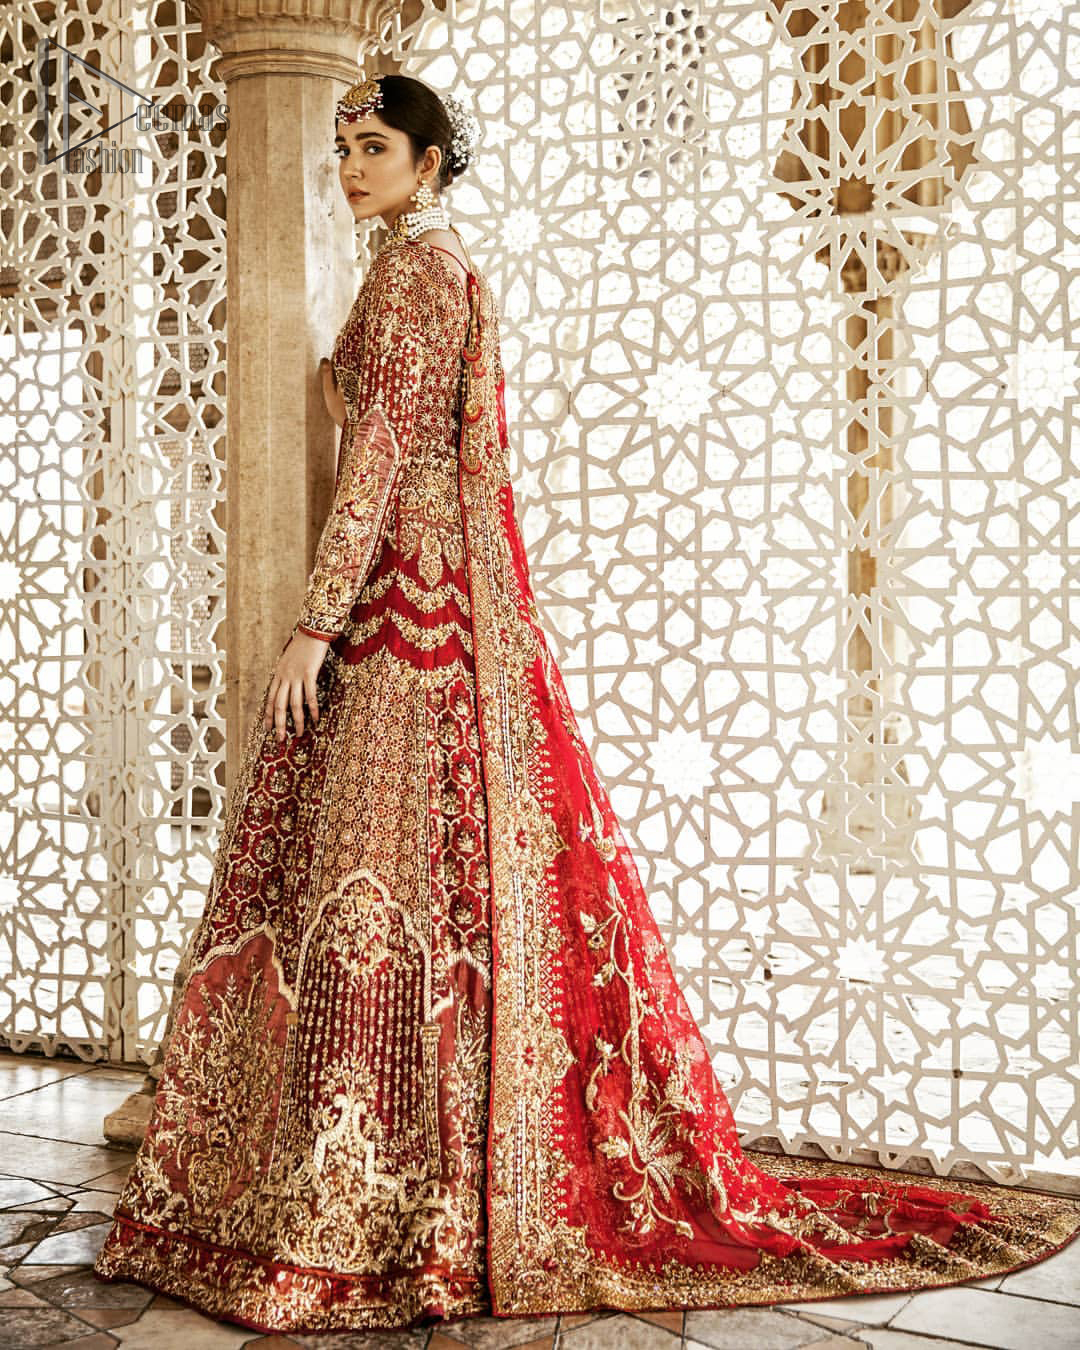 Captured in traditional silhouette, This traditional red pishwas is aesthetically designed with motifs,geometric and floral patterns, embellished with kora, dabka, tilla and sequins work. It comes with full embellished lehenga which is gorgeously handcrafted with golden and antique shaded zardozi work. The piece comes with a handcrafted belt. It is coordinated with net dupatta which is sprinkled with sequins all over it. It is further furnished with four sided border and floral bunches.